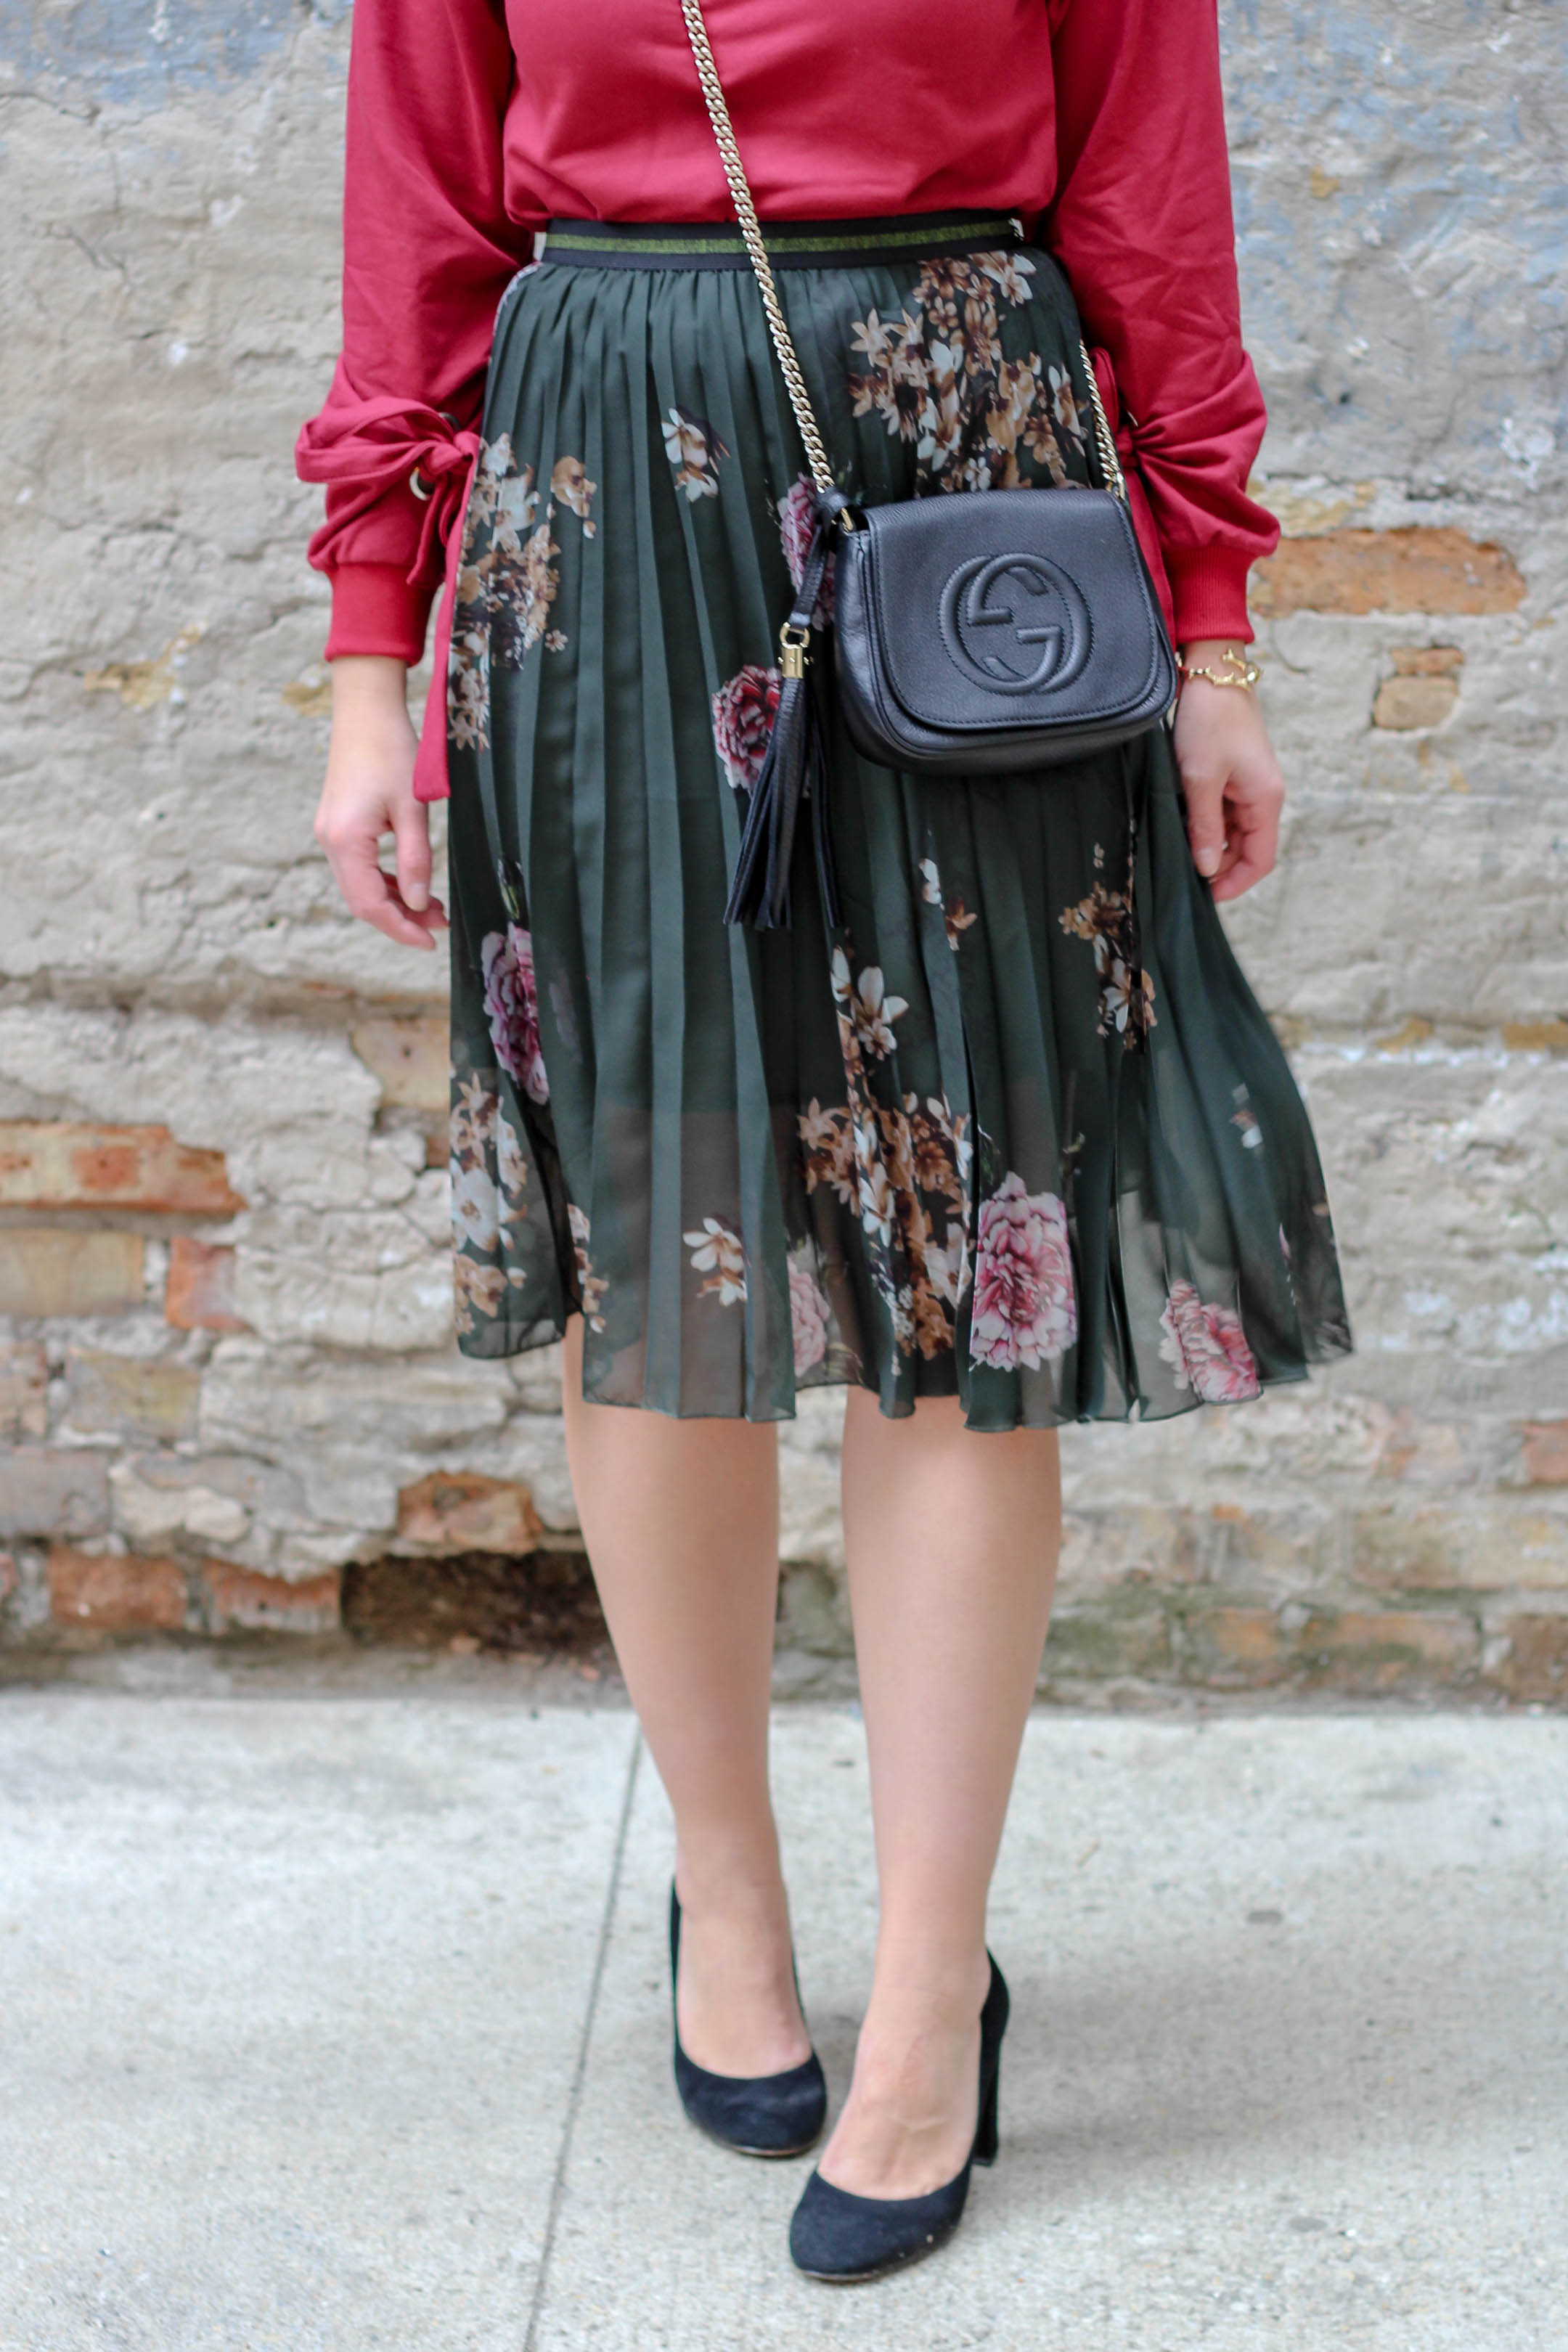 Desiguel Floral Skirt mixed with a sweatshirt